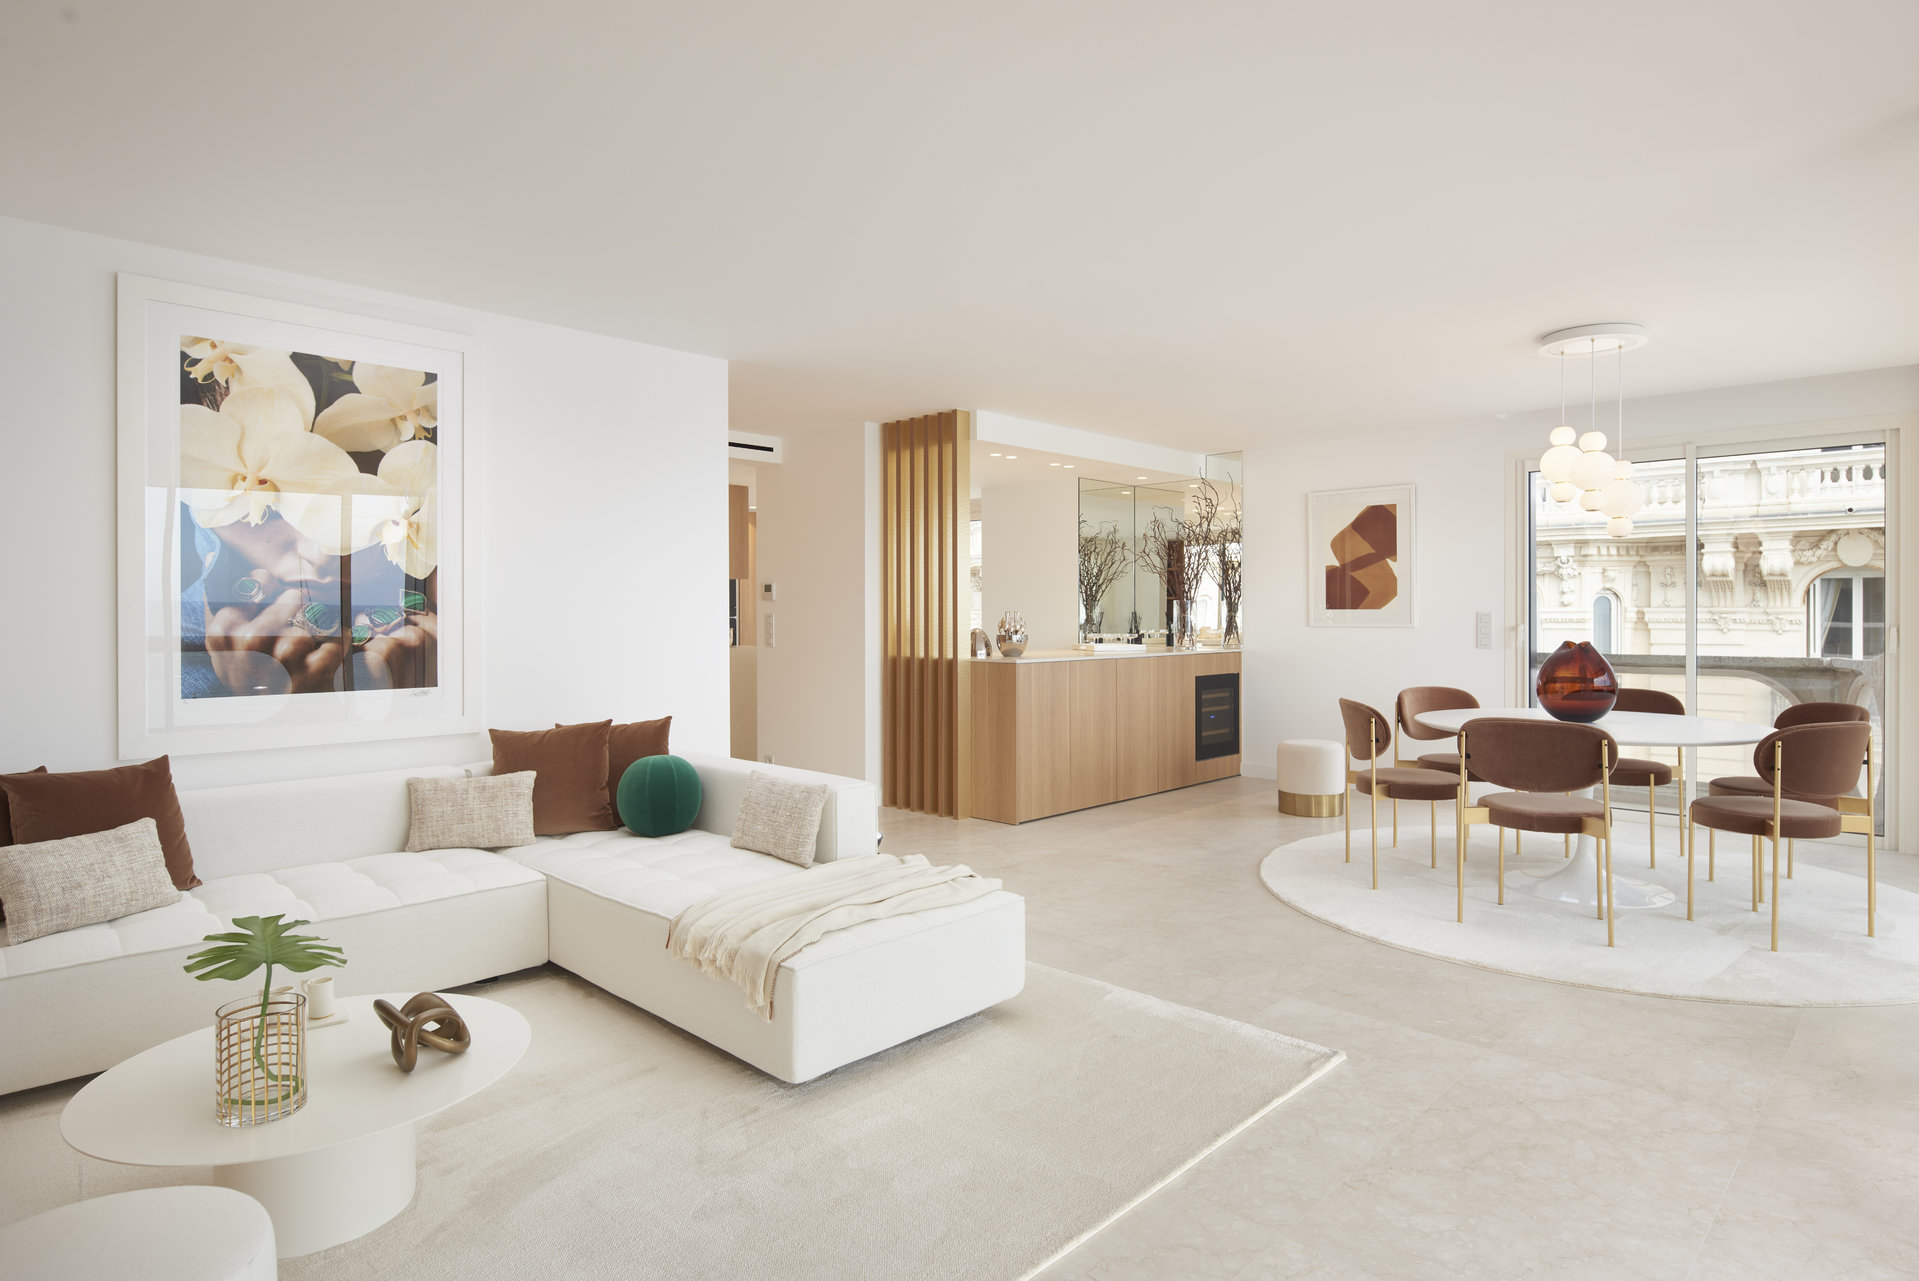 FOR SALE CANNES CROISETTE 155M2 FOUR ROOMS PANORAMIC SEA VIEW